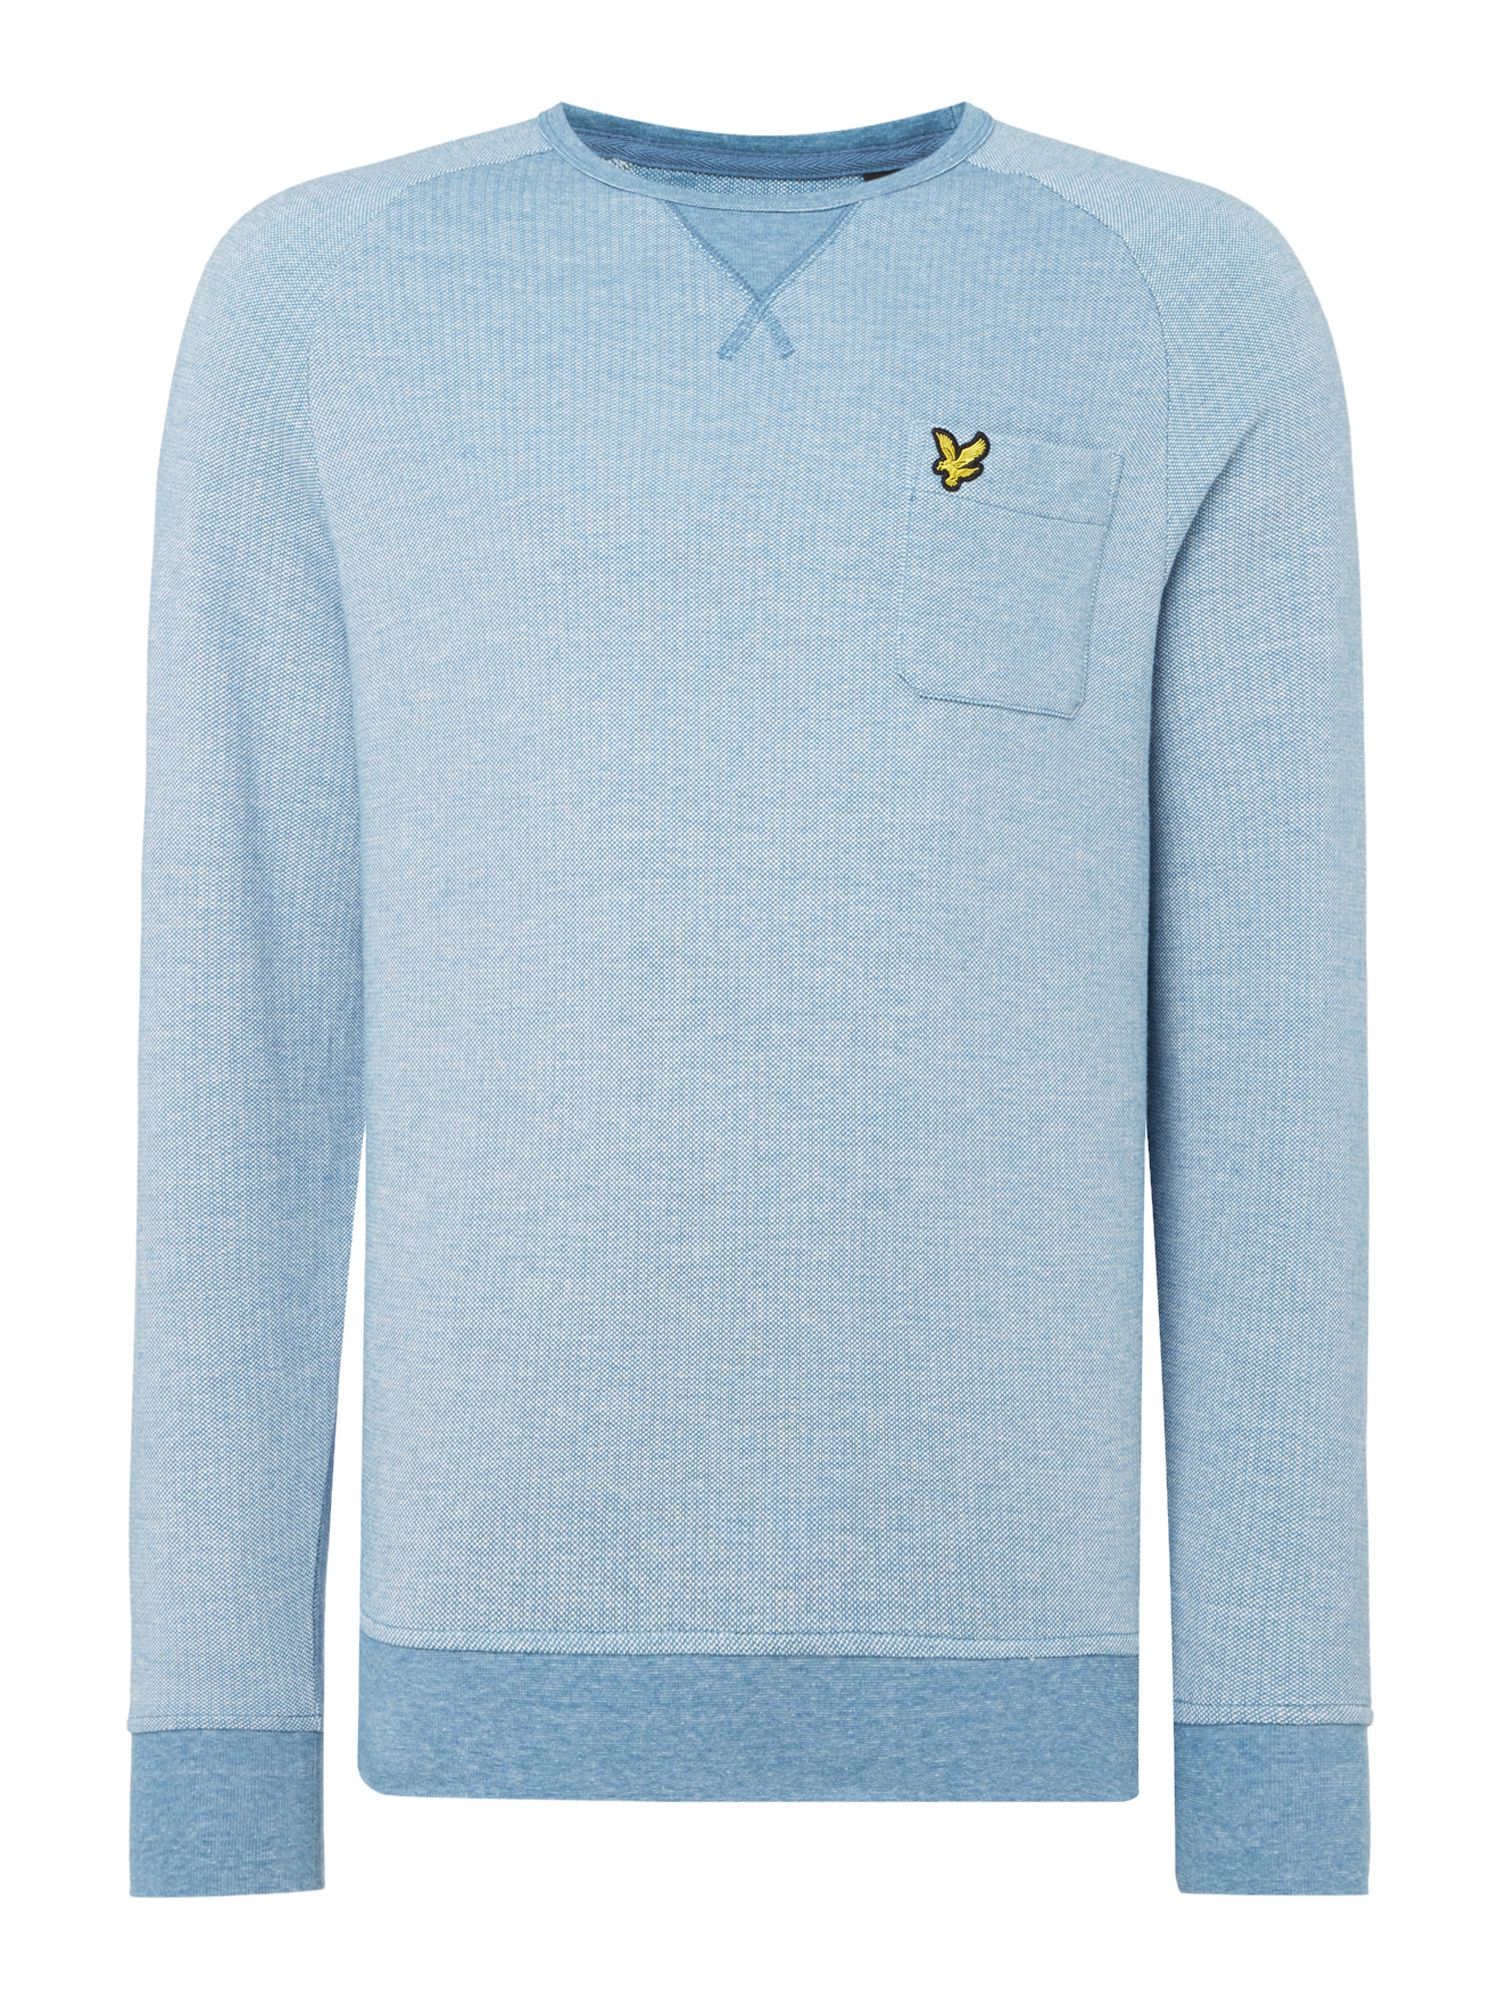 Men's Lyle and Scott Oxford crew neck sweatshirt, Light Blue